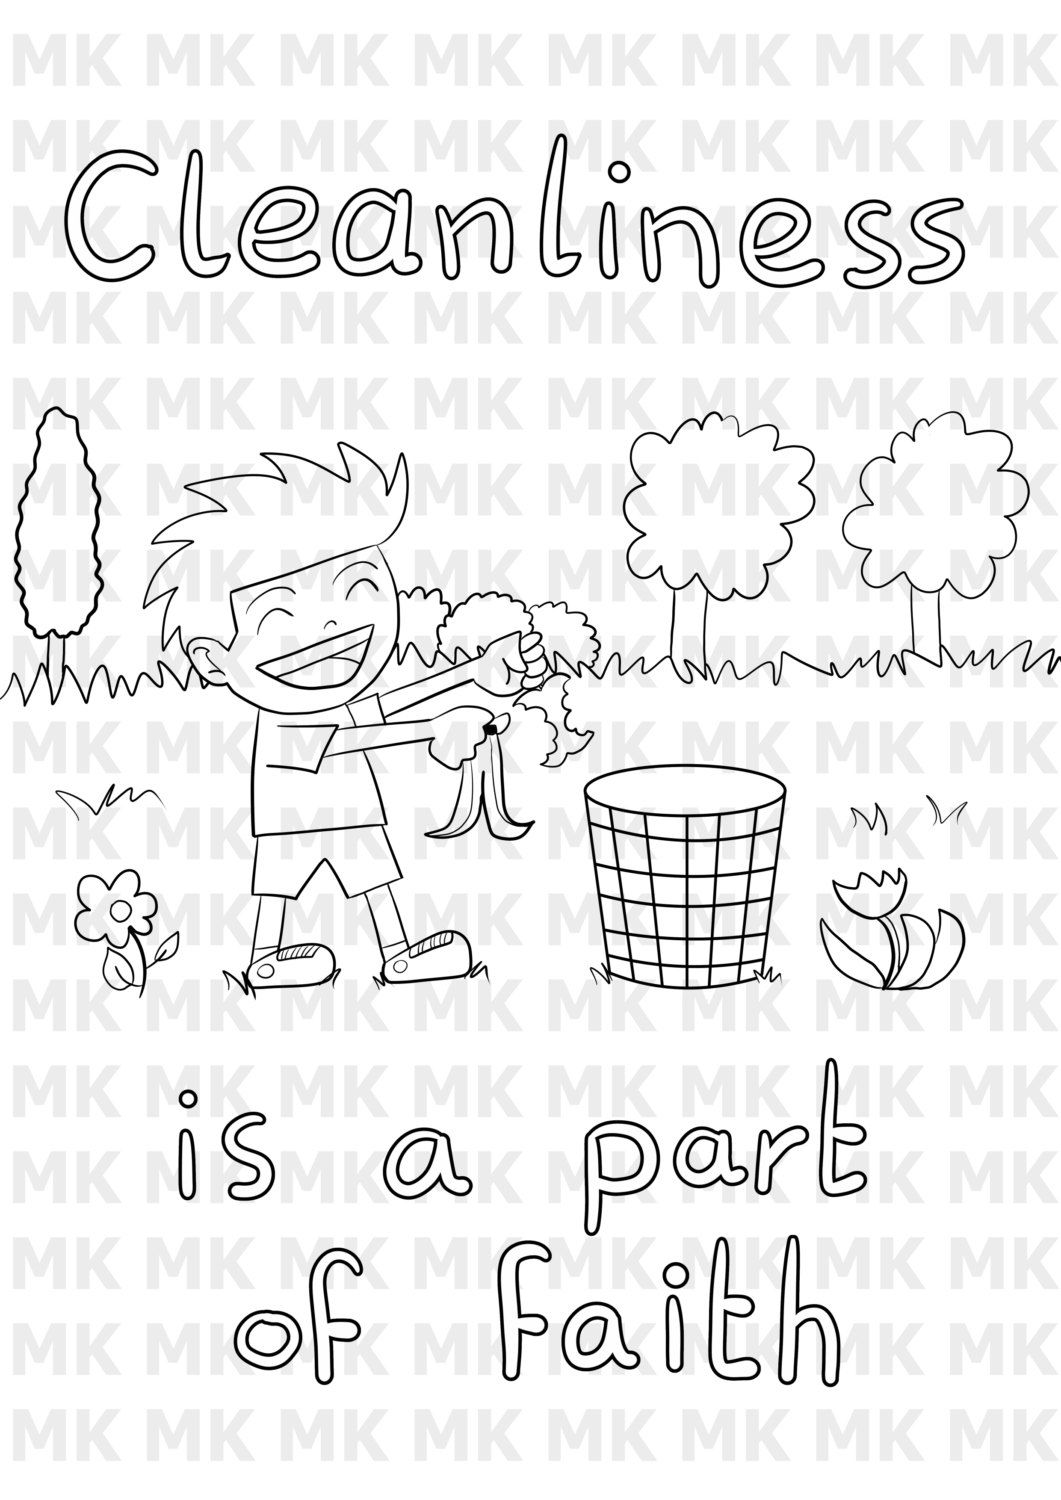 printable muslim child coloring  cleanliness by muslimchildart on etsy